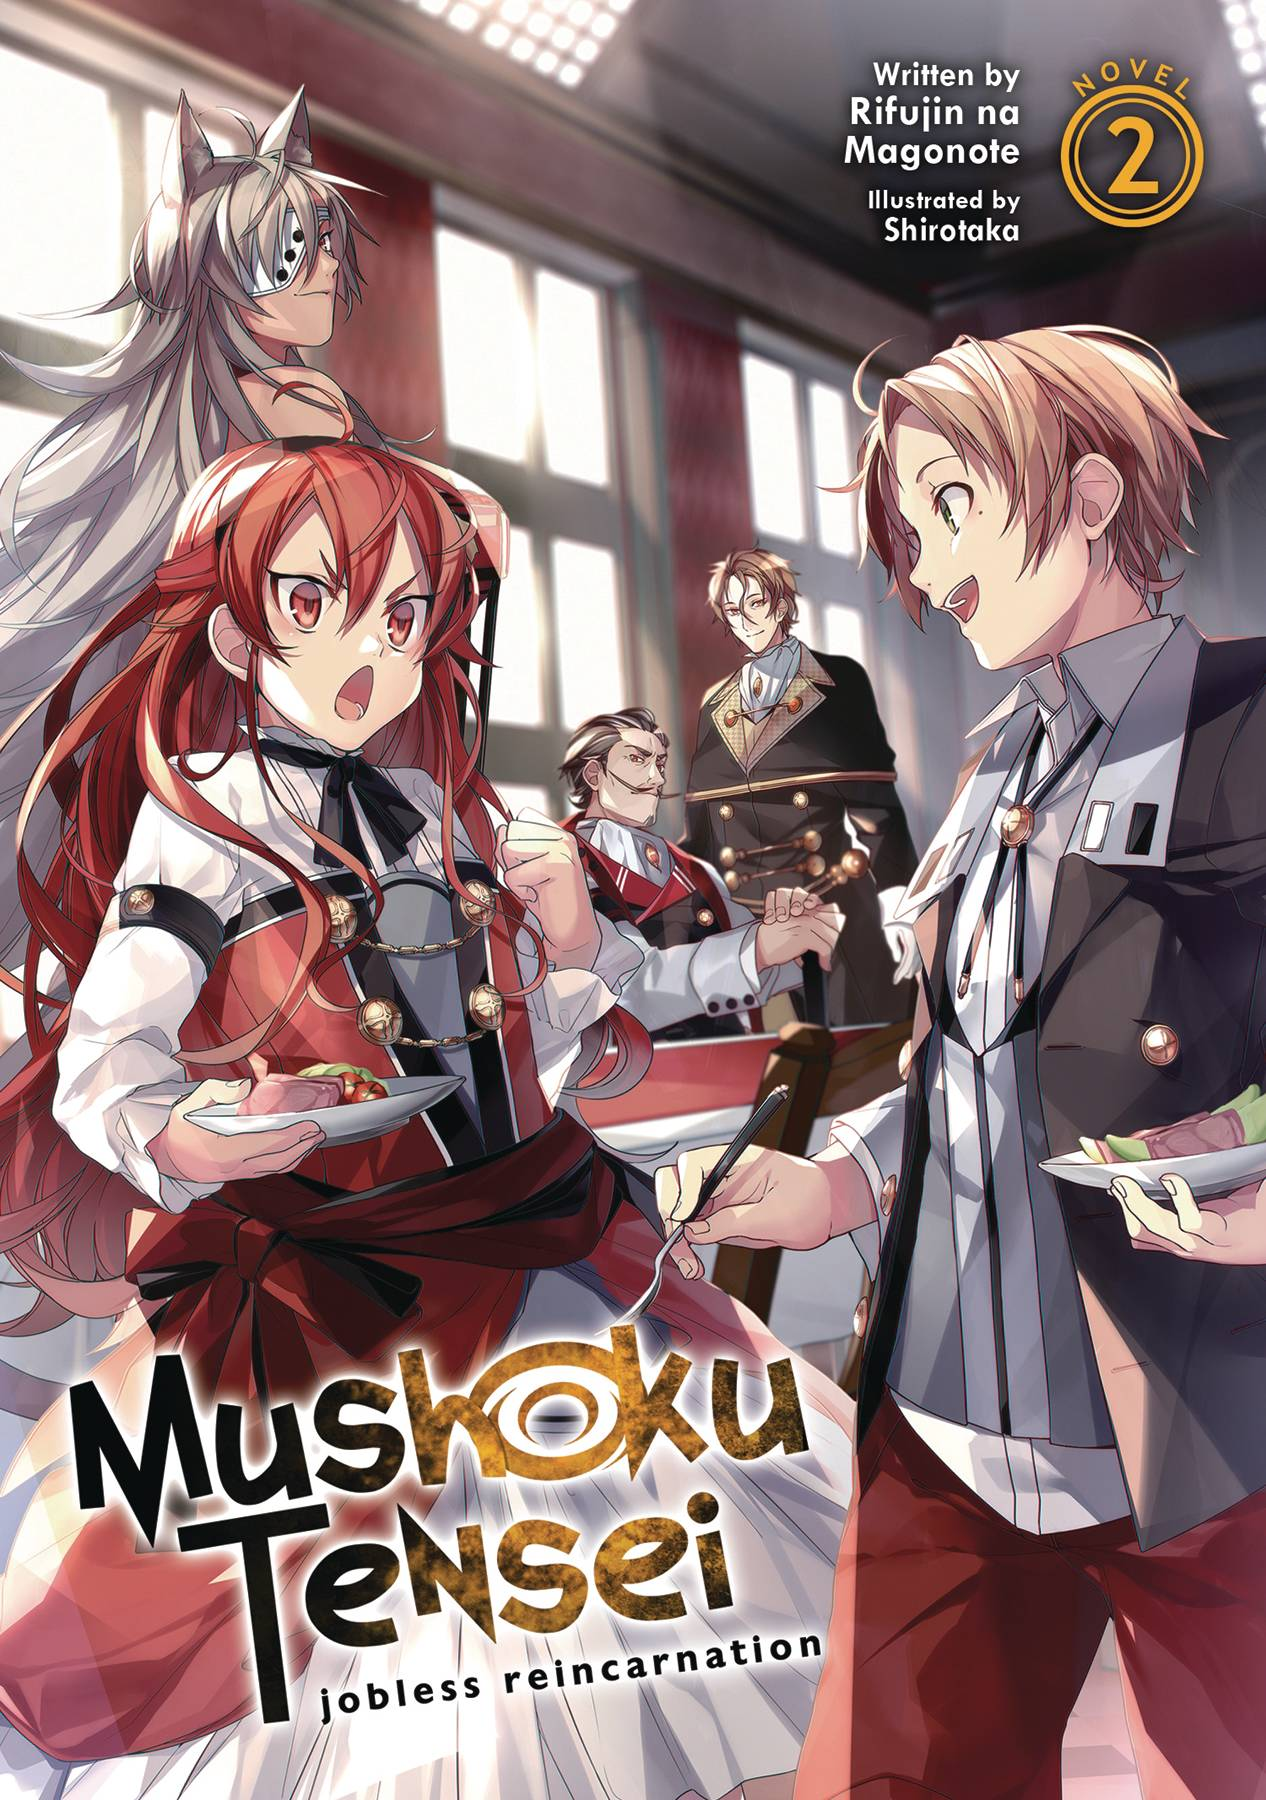 MUSHOKU TENSEI JOBLESS REINCARNATION LIGHT NOVEL SC VOL 02 (